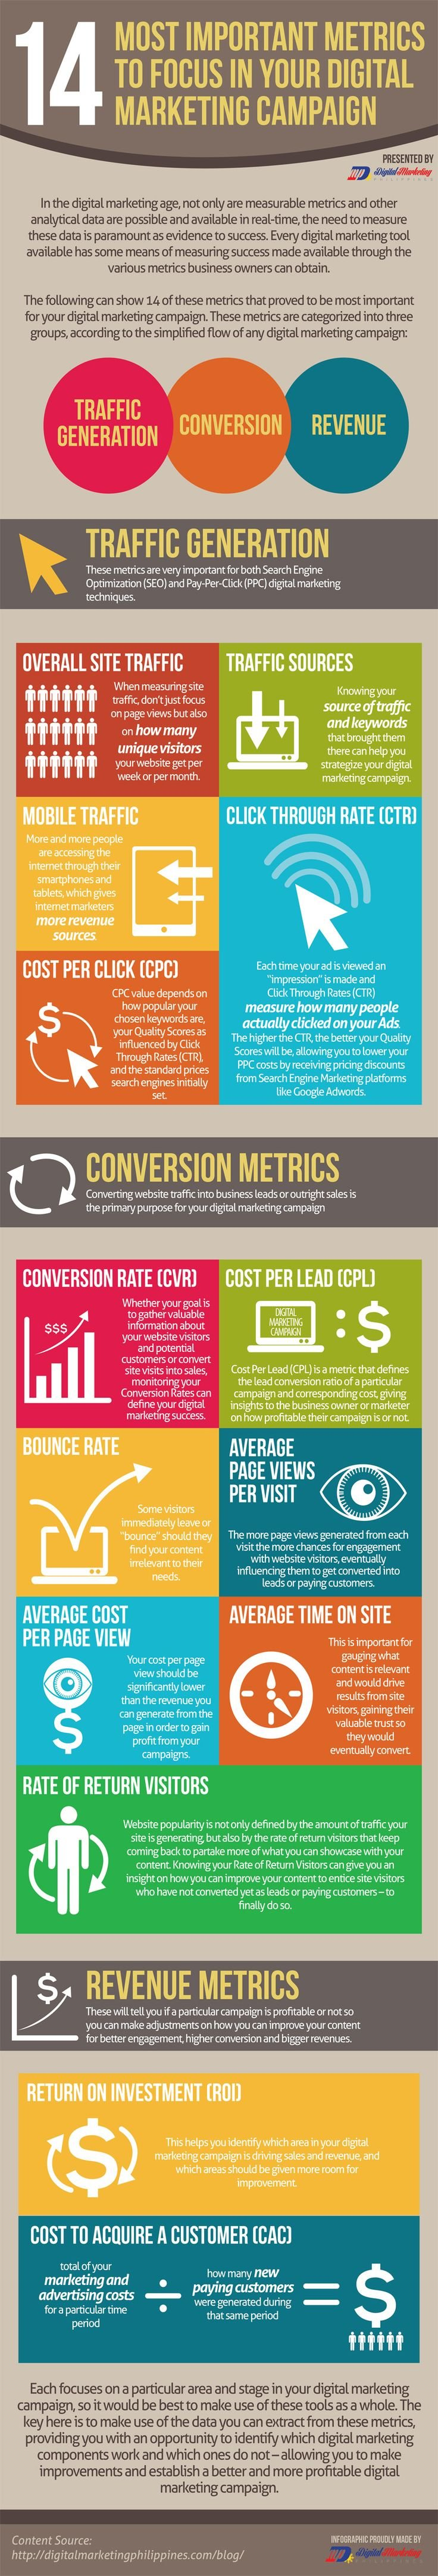 14 Most important metrics to focus in your digital marketing campaign #infographic